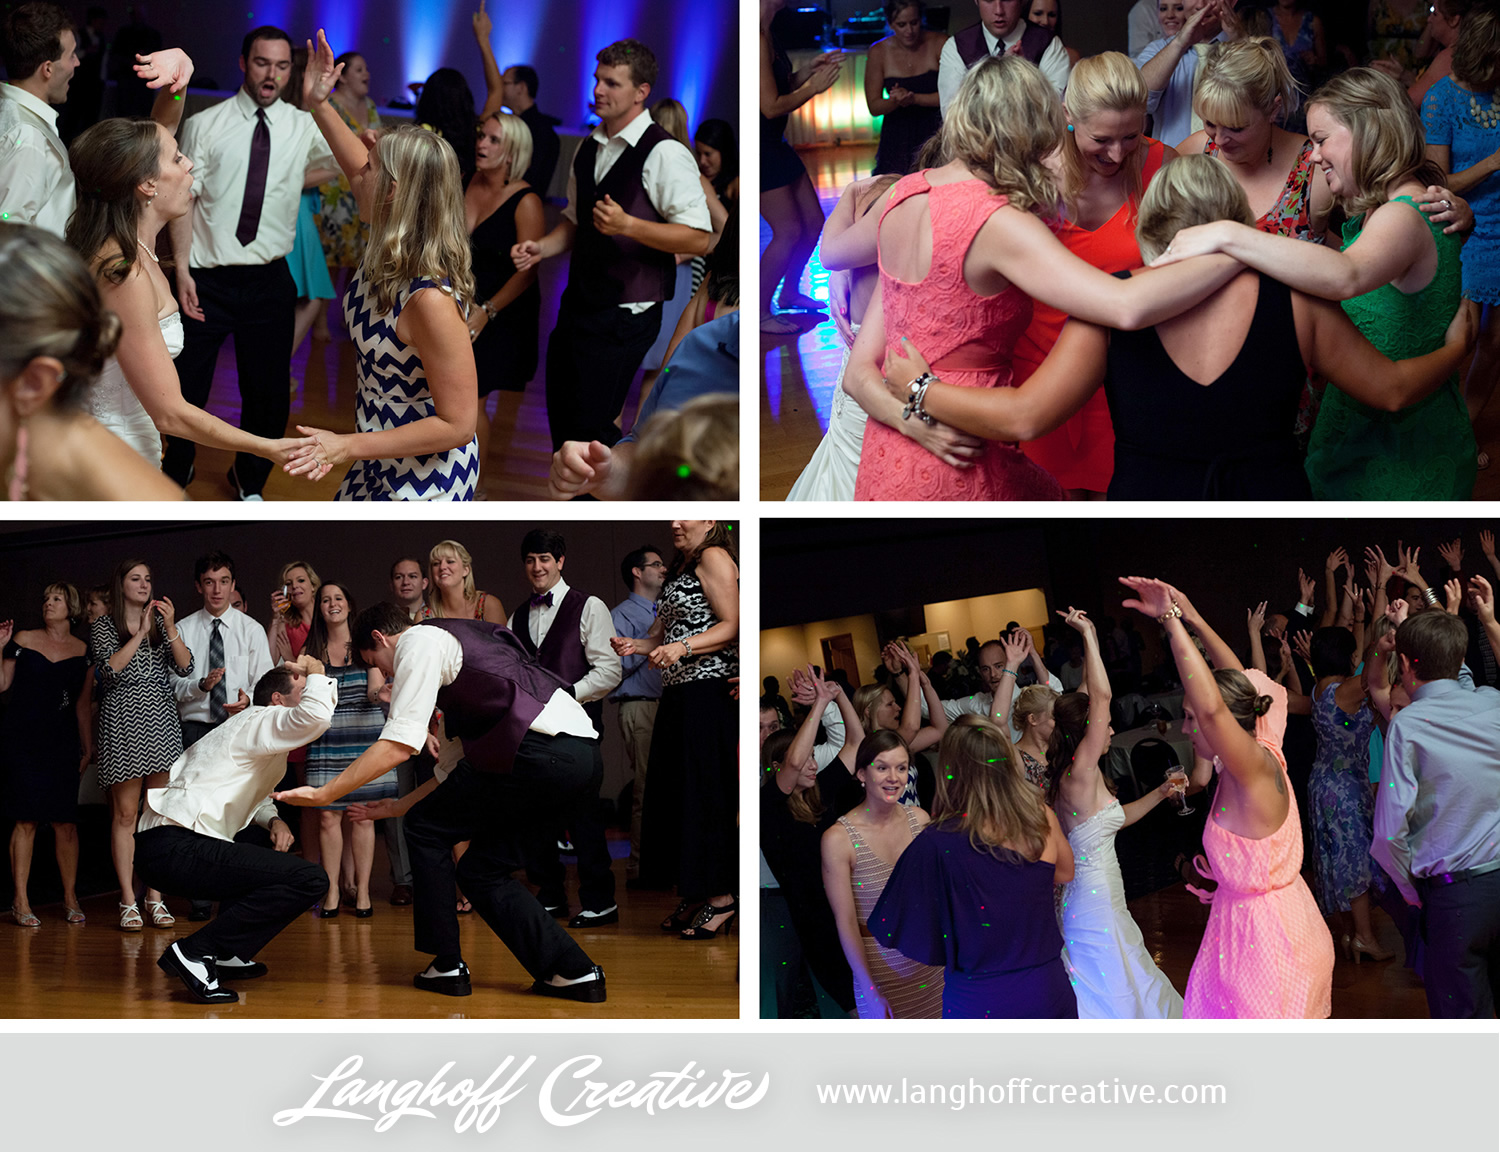 PlainfieldWedding-2013-LanghoffCreative-MattErin-29-photo.jpg